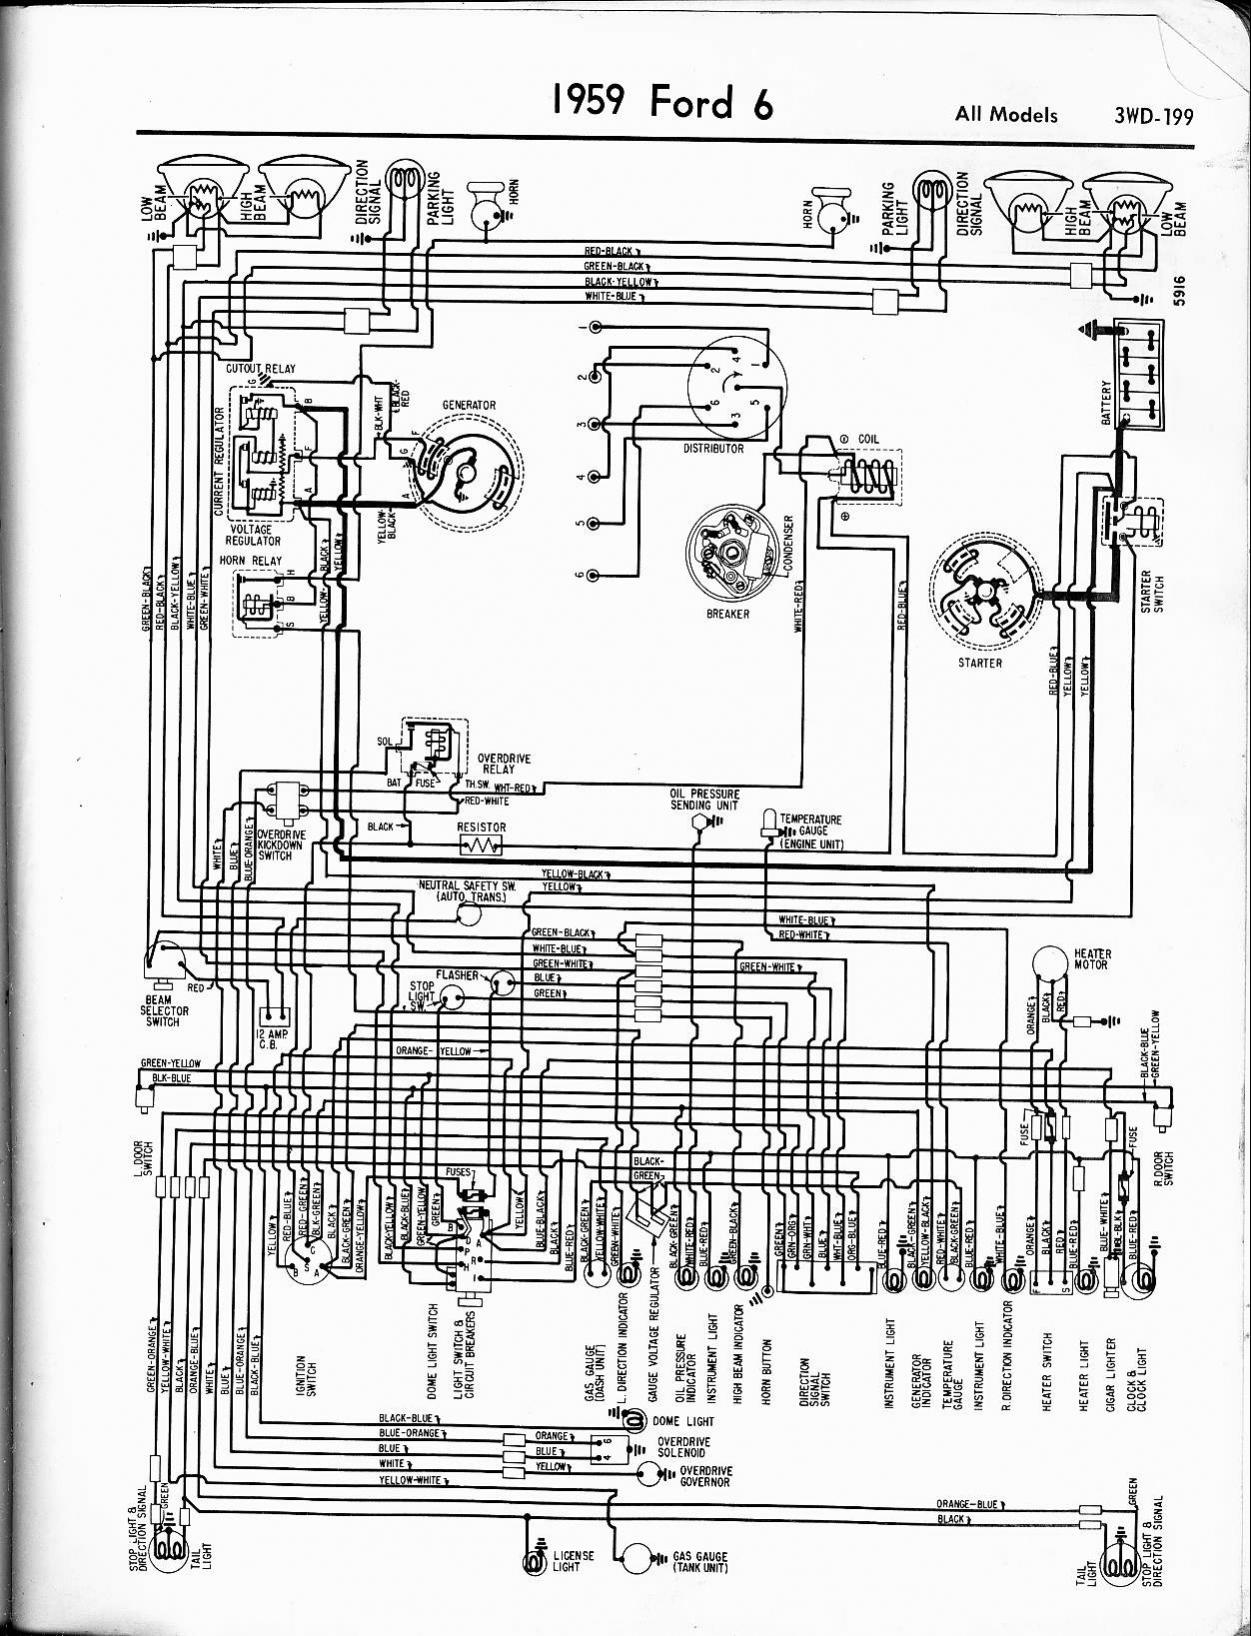 Fiat Ducato 3 0 Wiring Diagram as well Schematics as well T18984 Diagrama Electrico Y Conectores Del Motor Jeep Xj 1991 1996 moreover Ford Wire Diagram moreover Bmw Z3 1997 Electrical Repair. on ba stereo wiring diagram